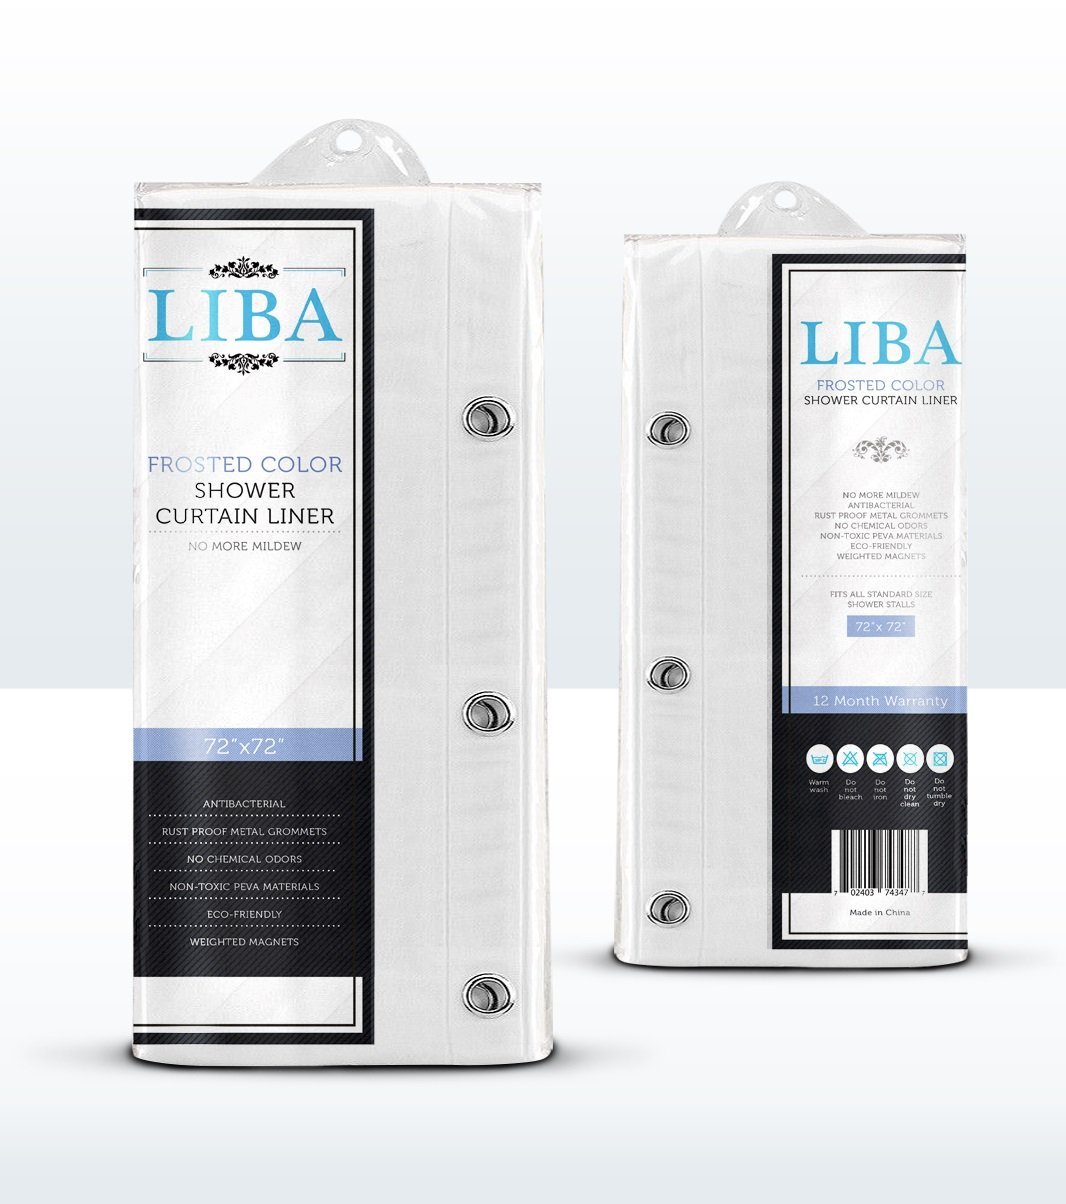 Liba PEVA Antimicrobial PVC Free Shower Curtain Liner, Frosted